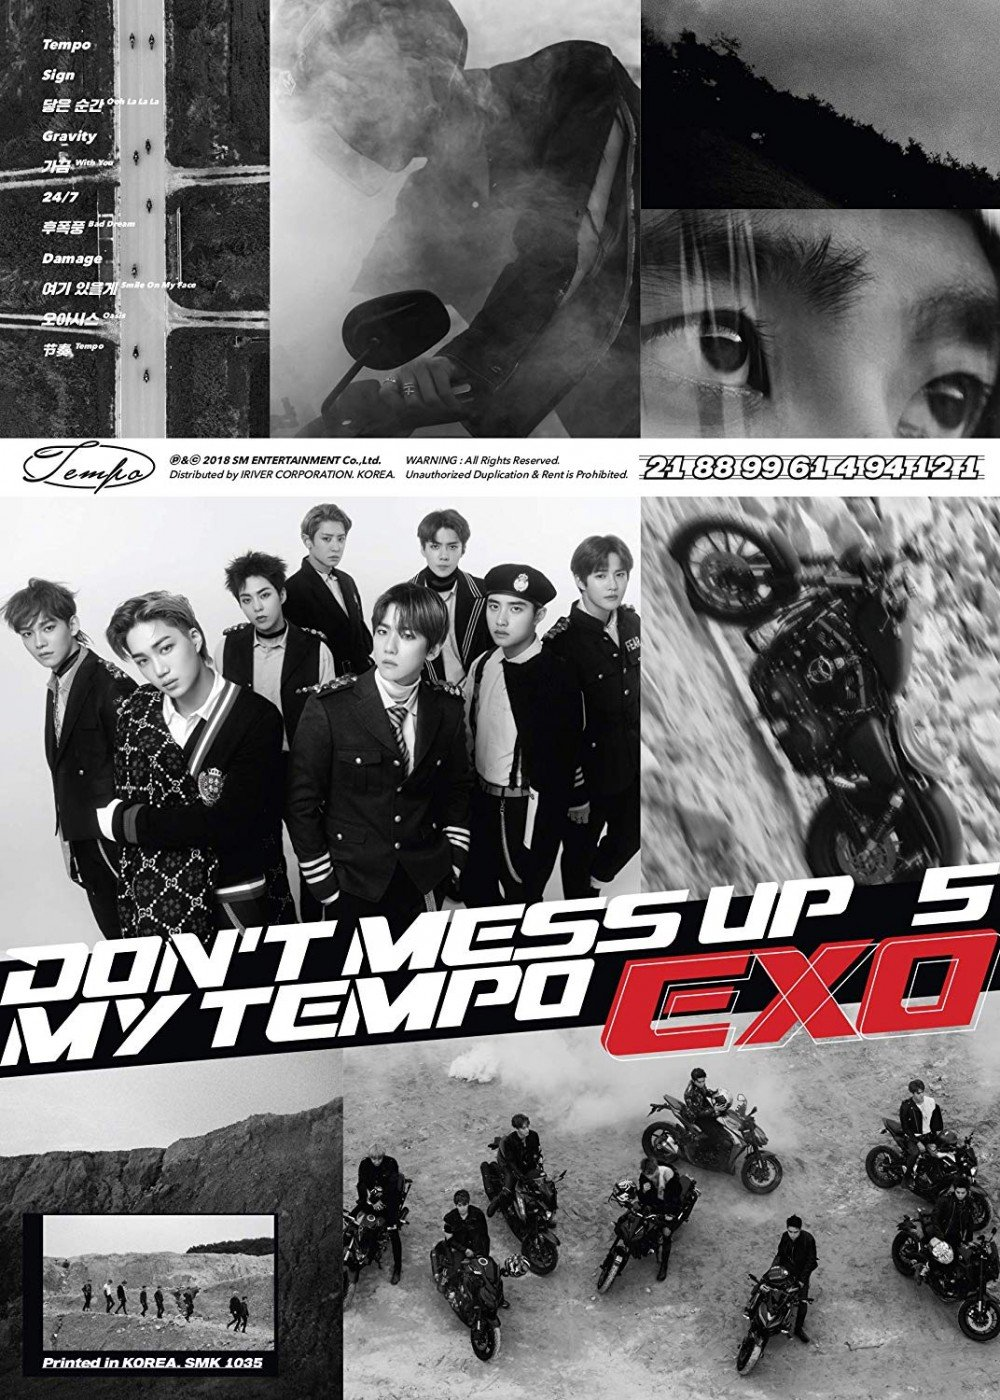 Which Exo Don T Mess Up My Tempo Album Version Do You Want Allkpop